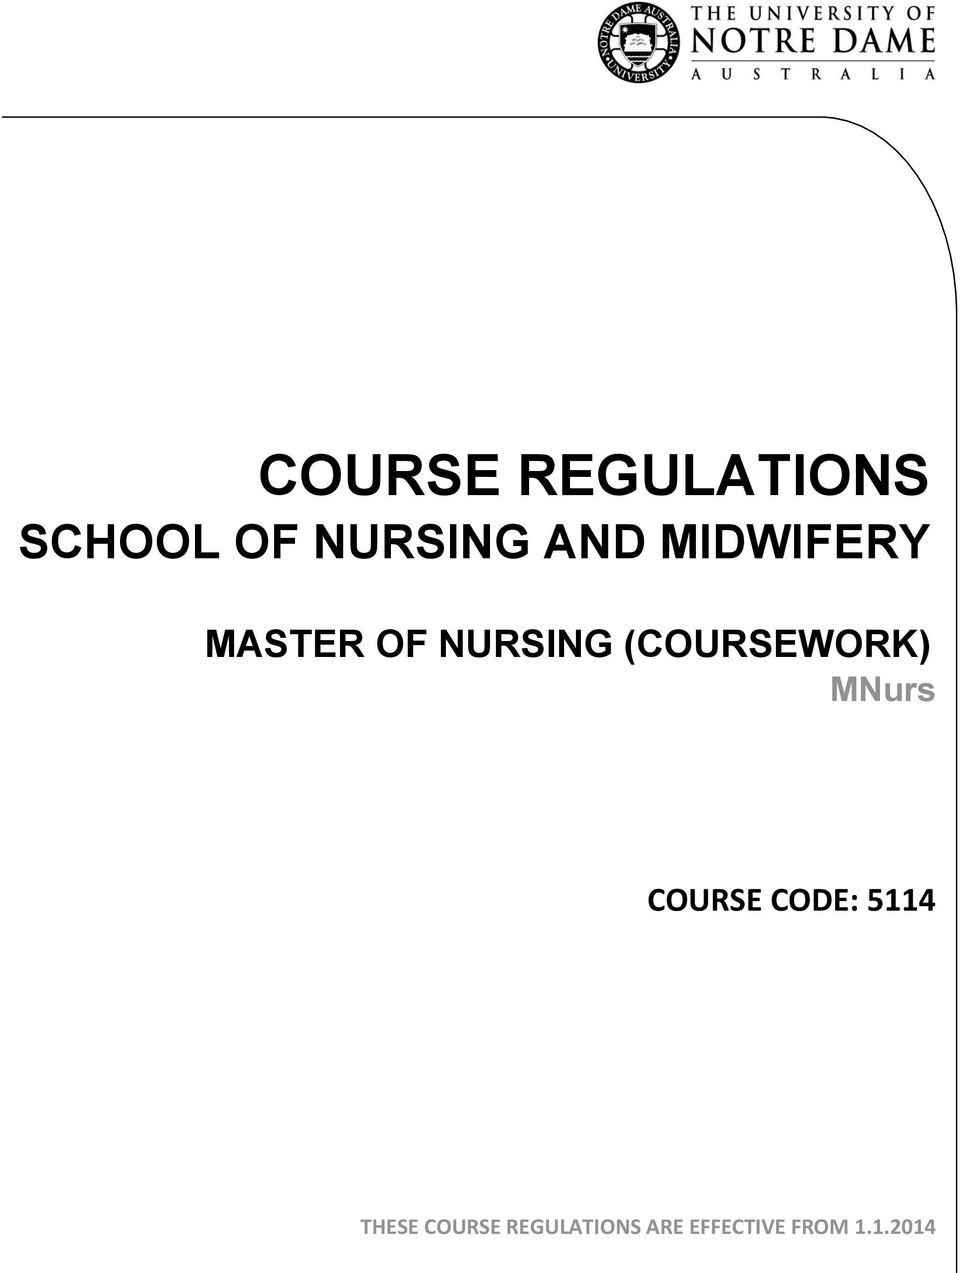 (COURSEWORK) MNurs COURSE CODE: 5114